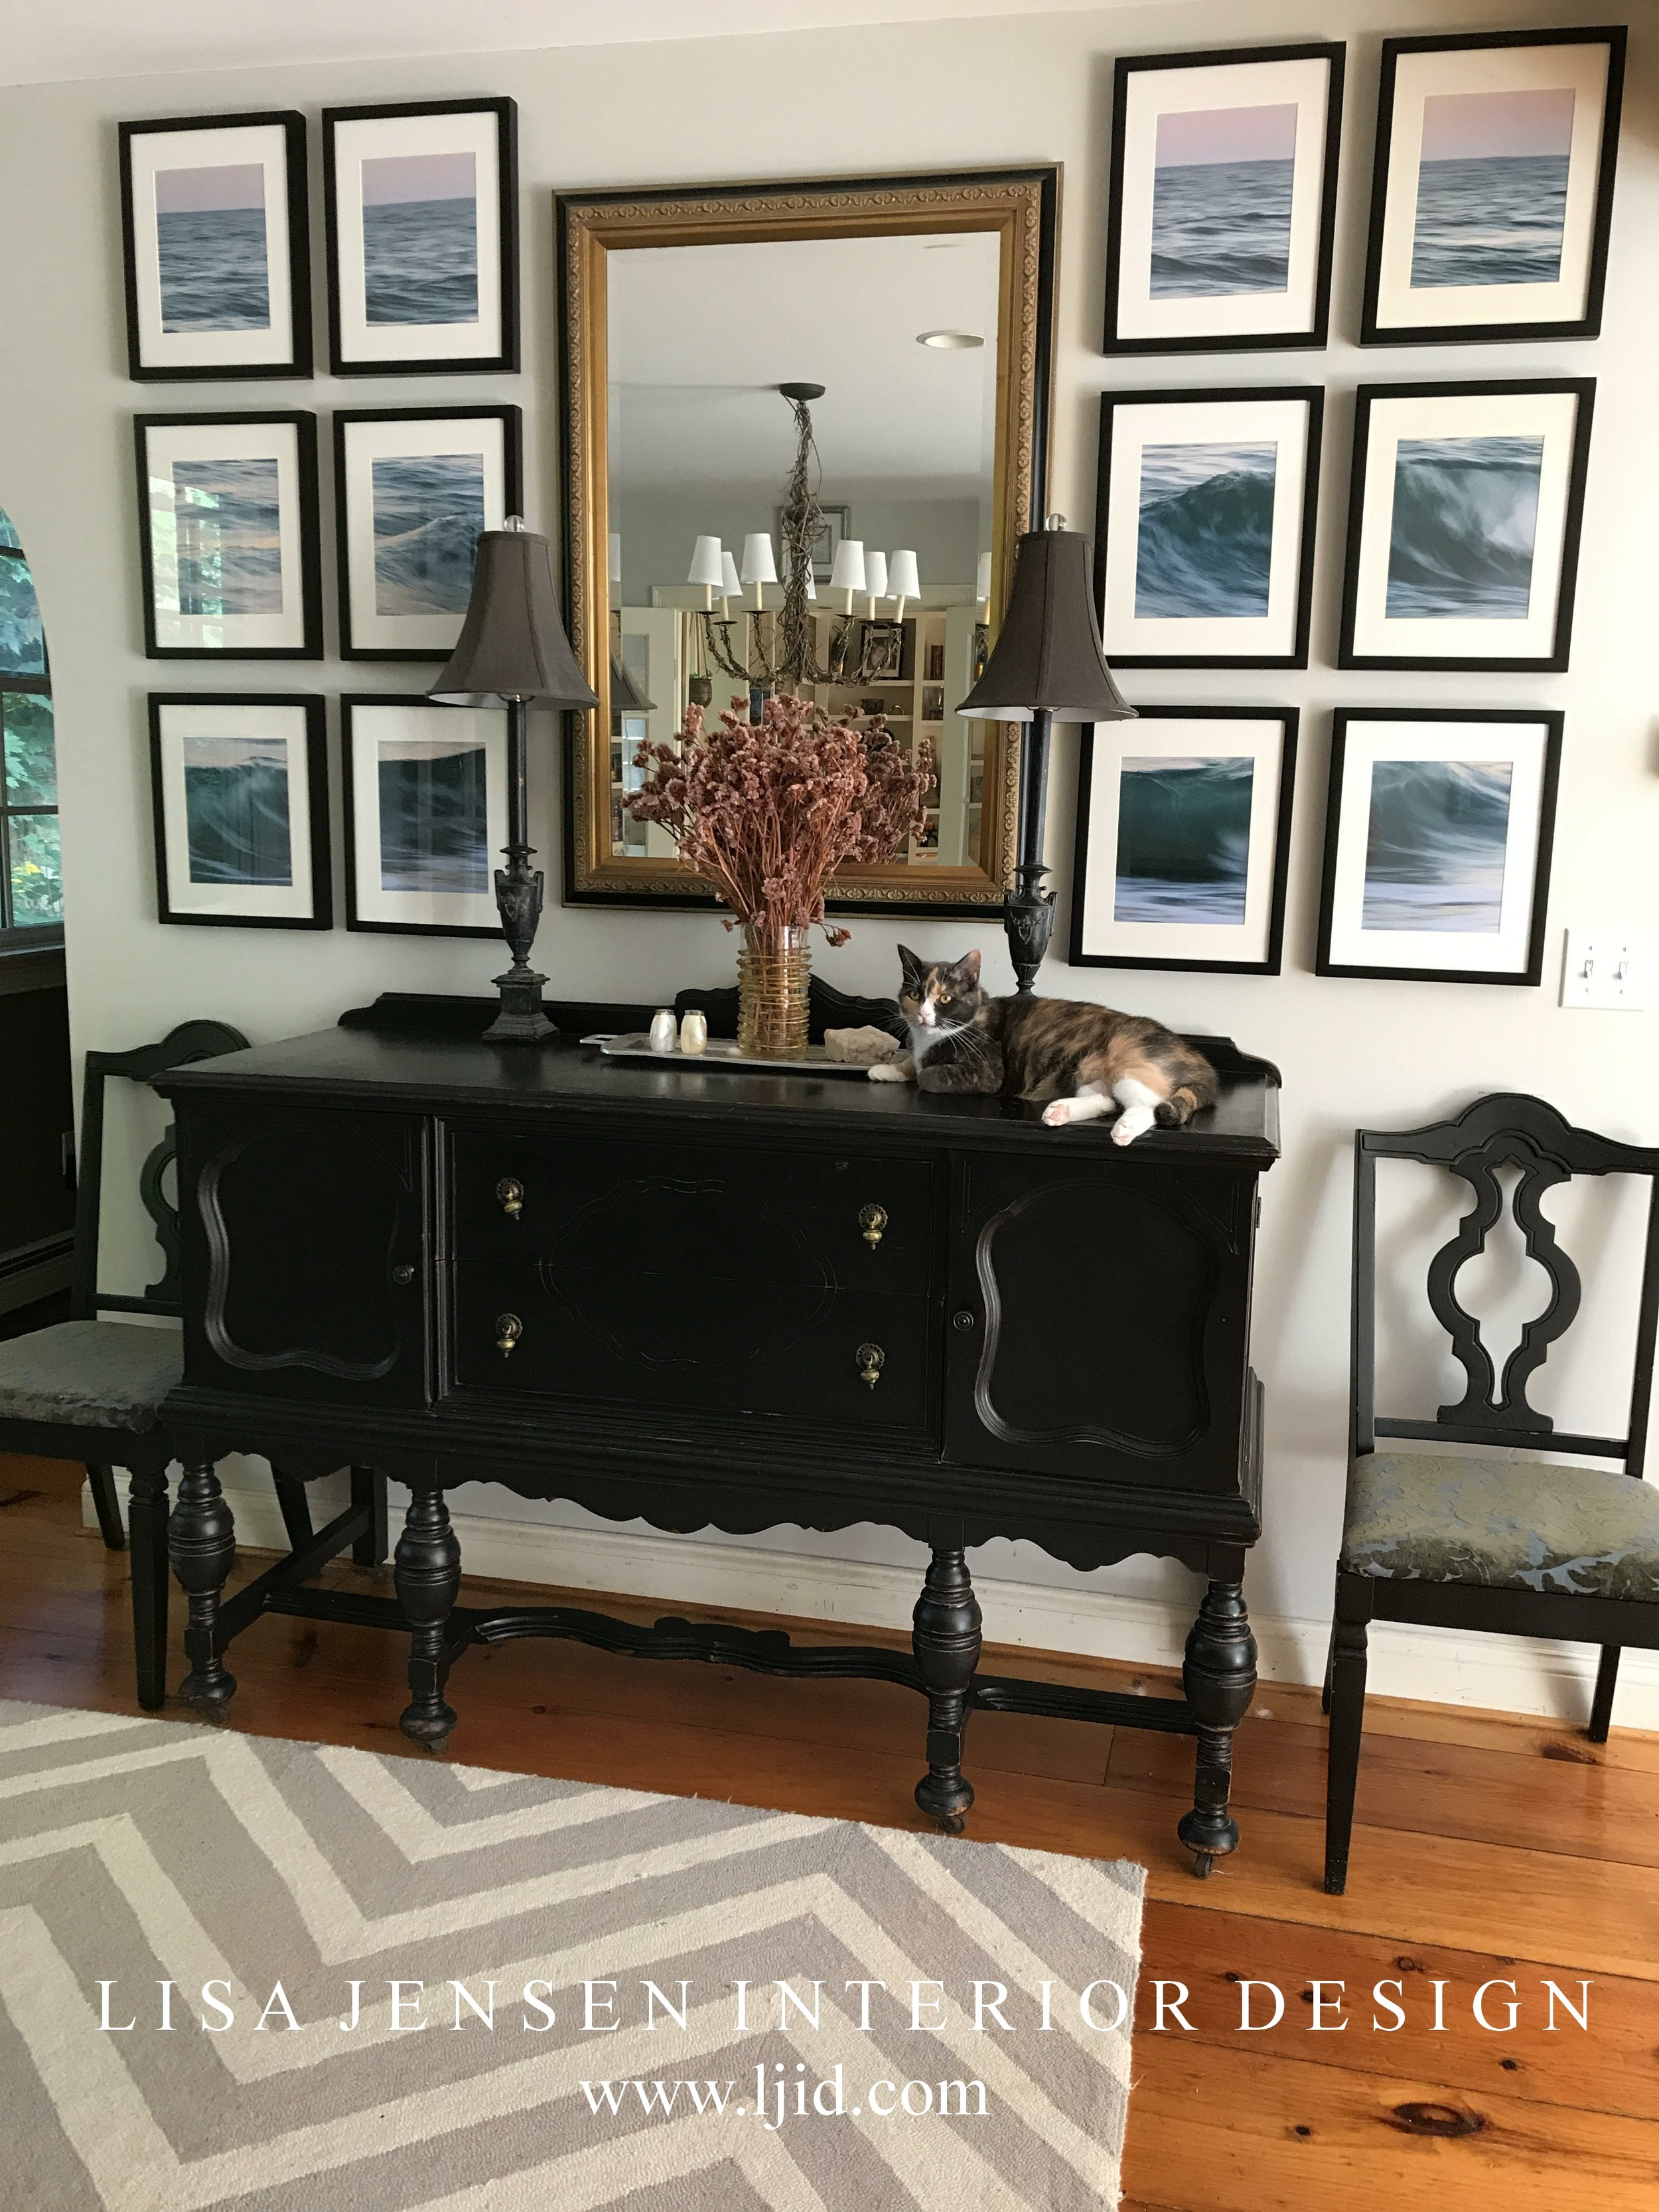 Boston North Shore interior designer Lisa Jensen of Lisa Jensen Interior Design creates a unique idea to decorate a wall with a one of a kind art installation in an open concept dining room design, enjoyed by one of the rescue cats. The designer shares her easy step by step design process below.